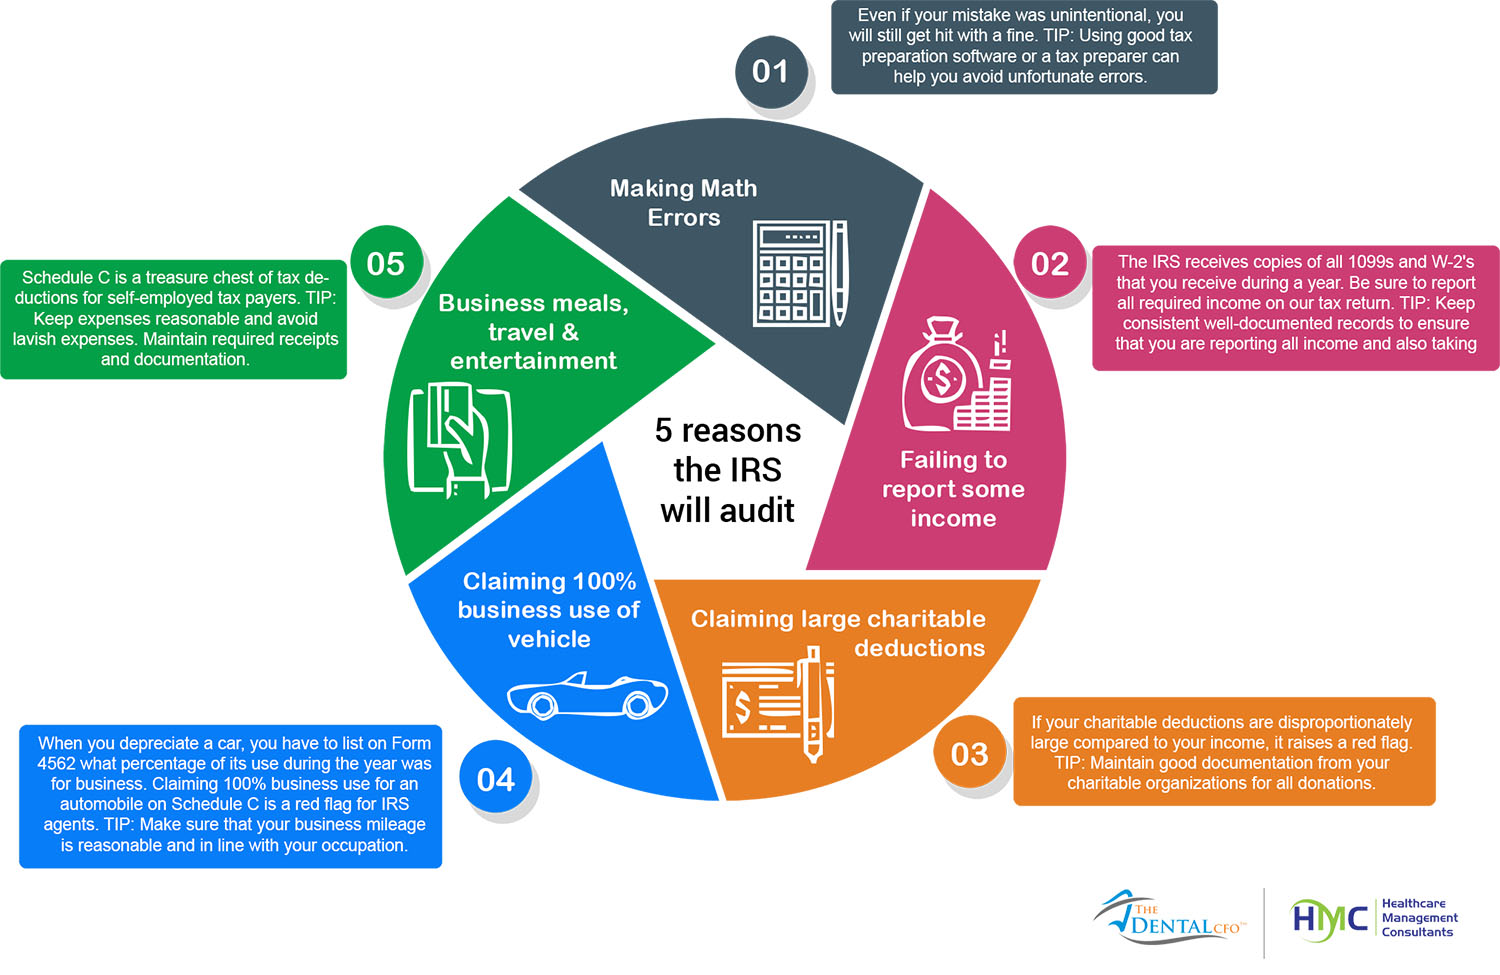 5 REASONS THE IRS WILL AUDIT (INFOGRAPHIC)